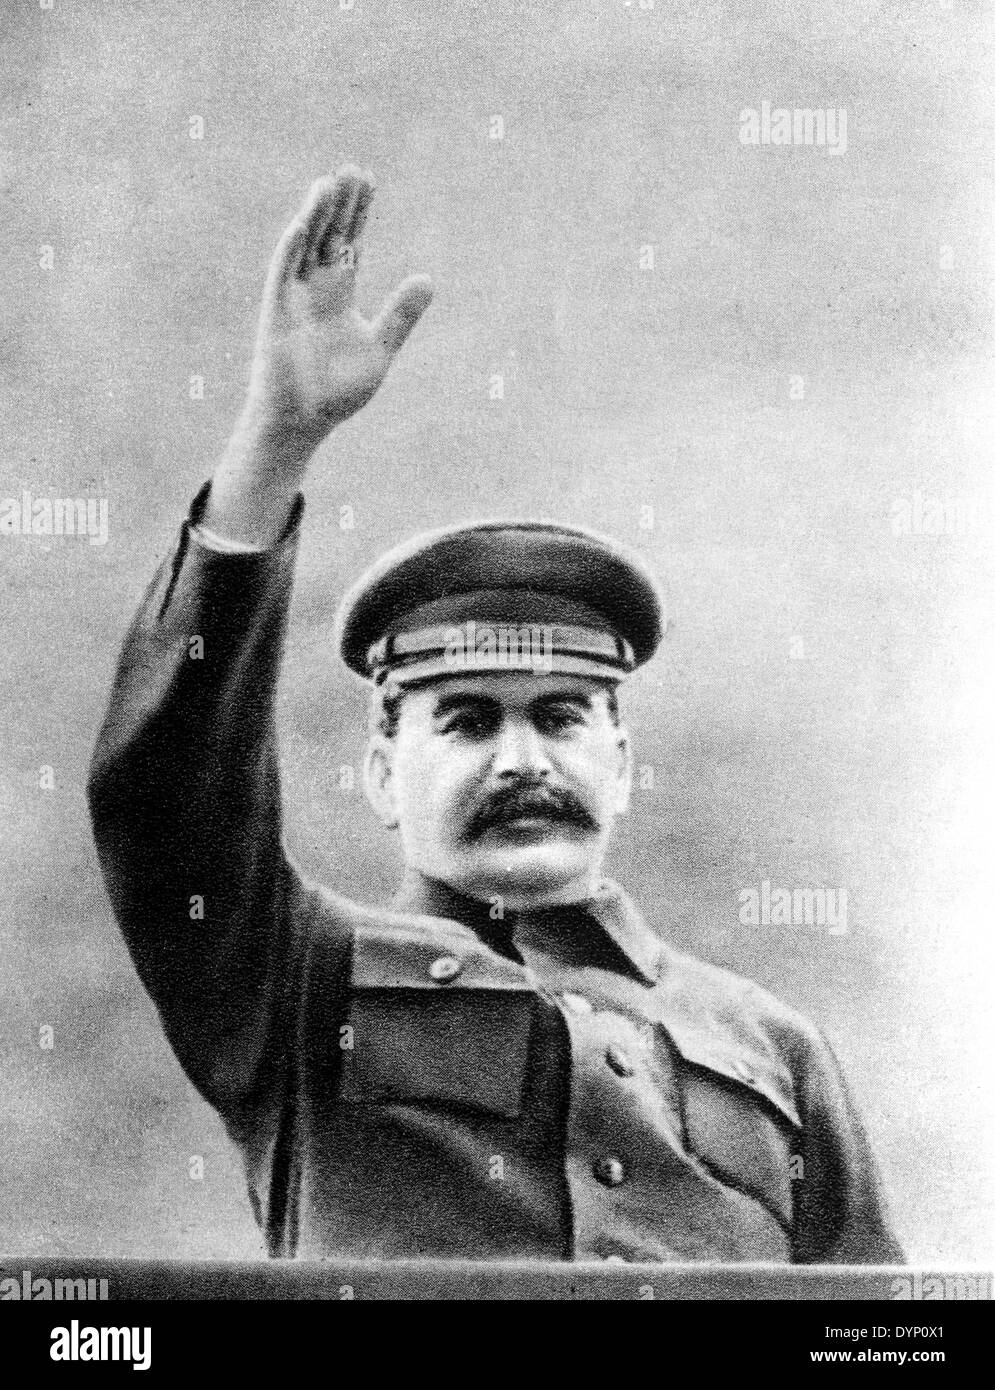 stalin a demotivational leader Joseph stalin's cult of personality became a prominent part of soviet culture in  december 1929, after a lavish celebration for stalin's 50th birthday for the rest of  stalin's rule, the soviet press presented stalin as an all-powerful, all-knowing  leader, and.